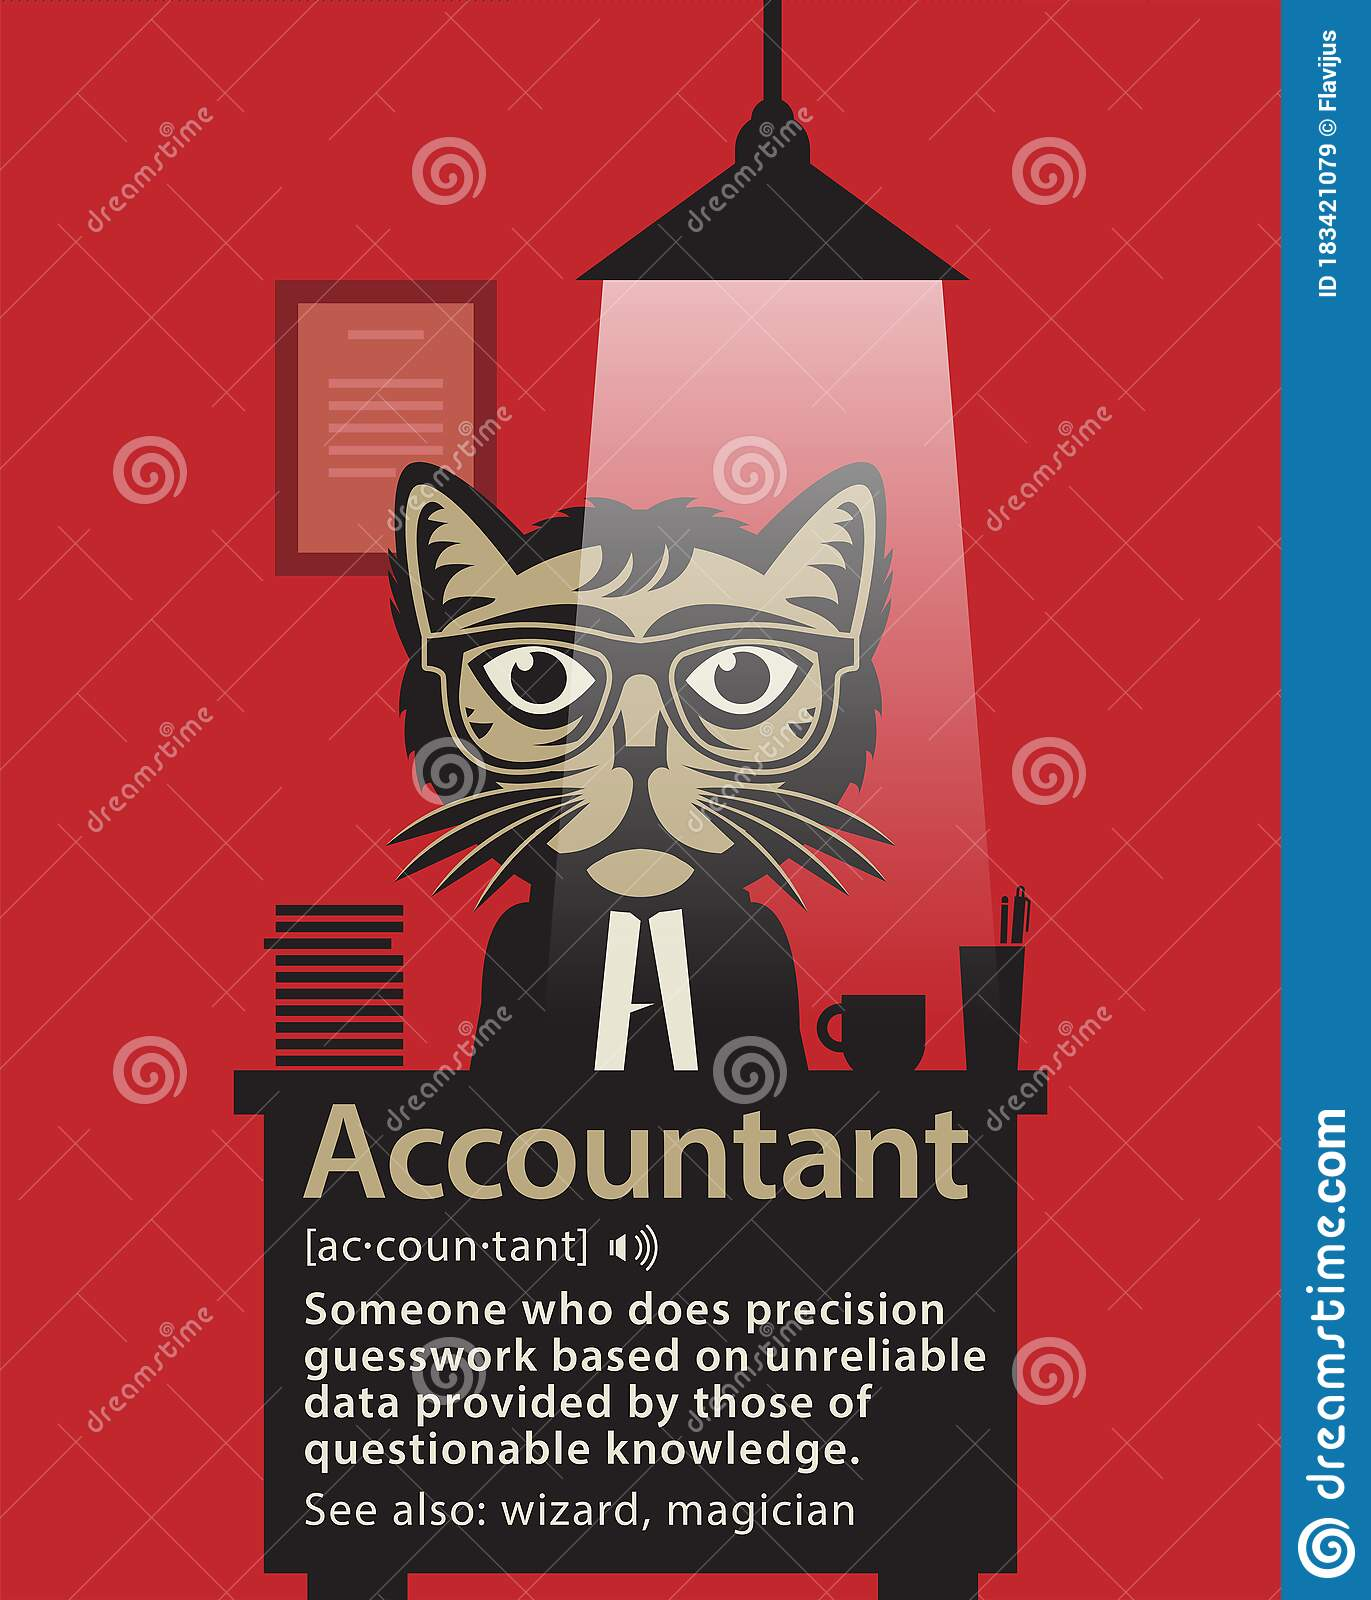 Accountant Definition Funny Accounting Noun Meaning Stock